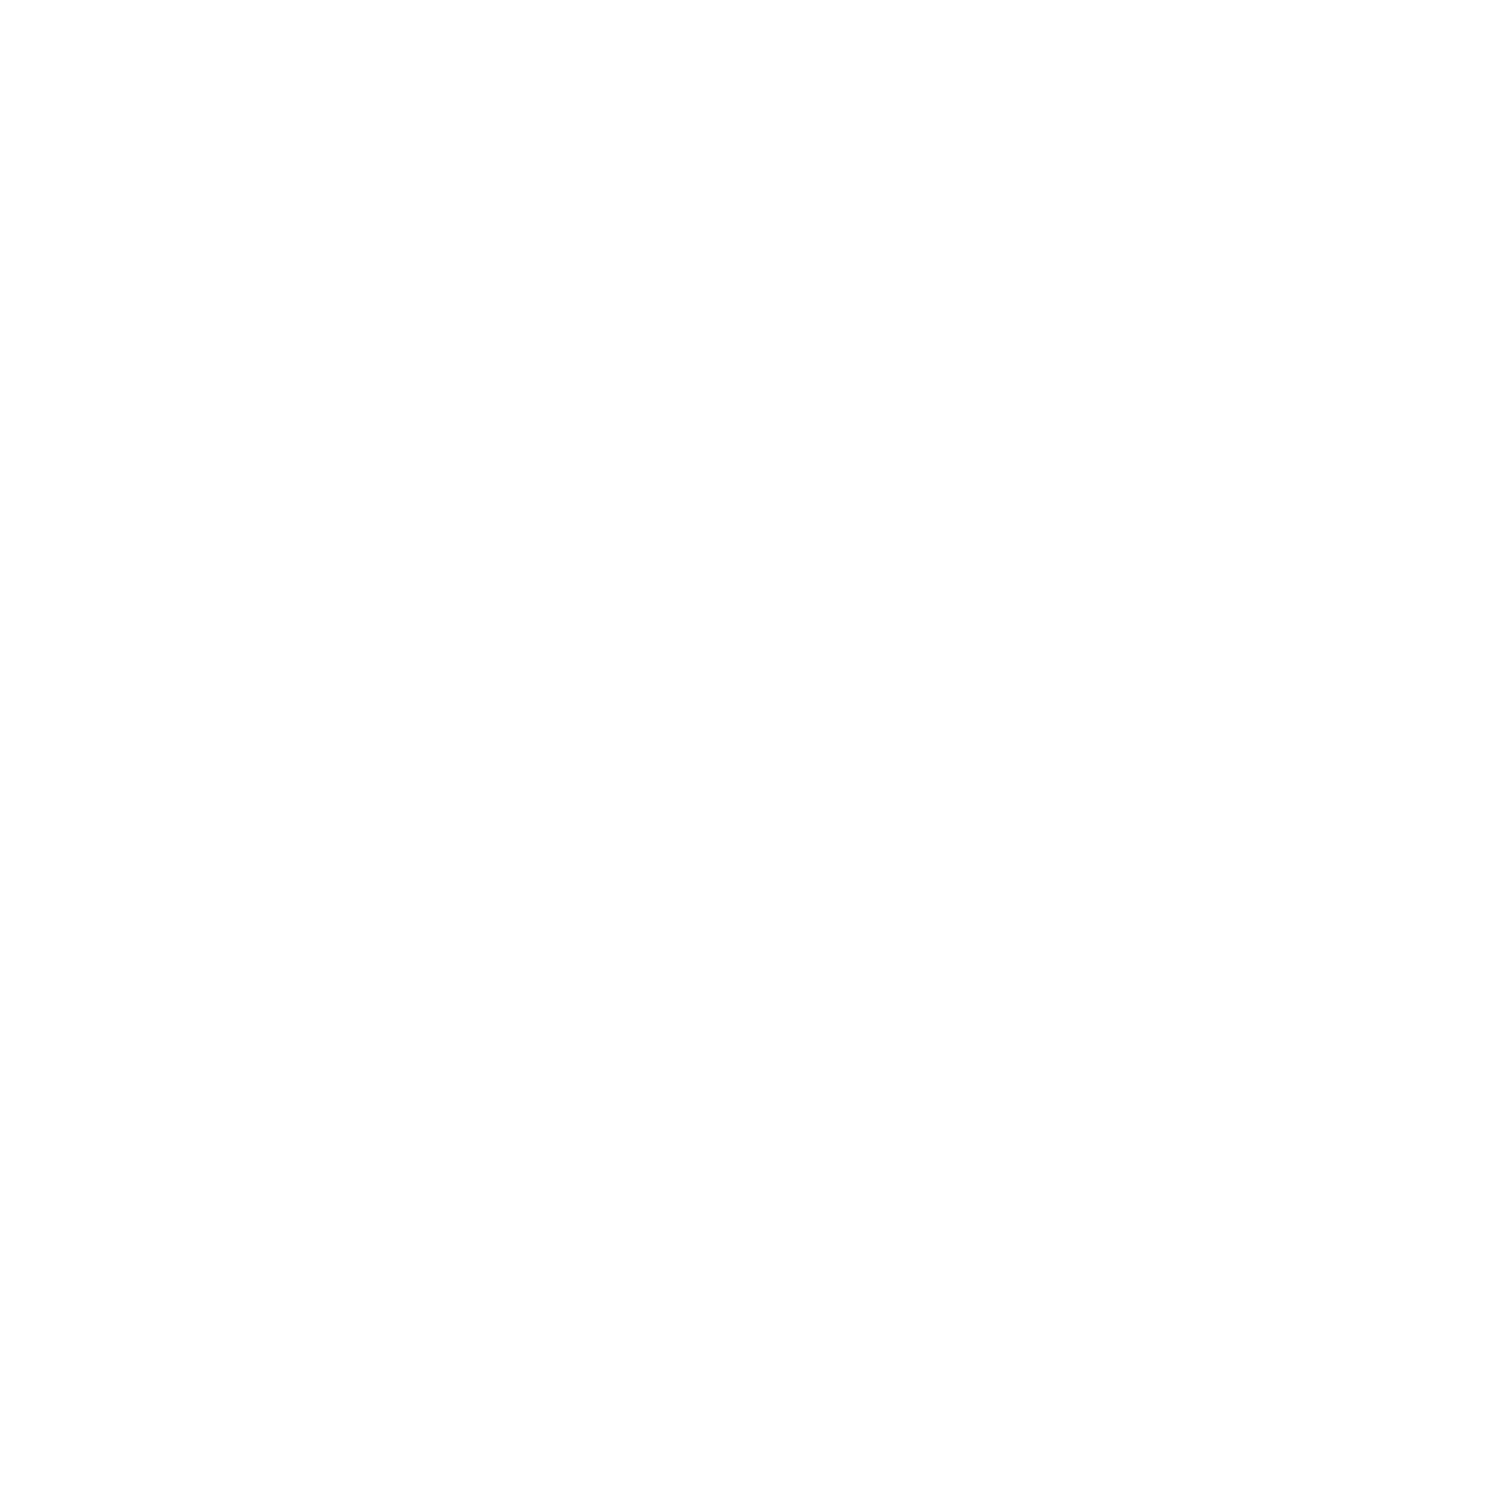 My Foodie Duty Logo in White